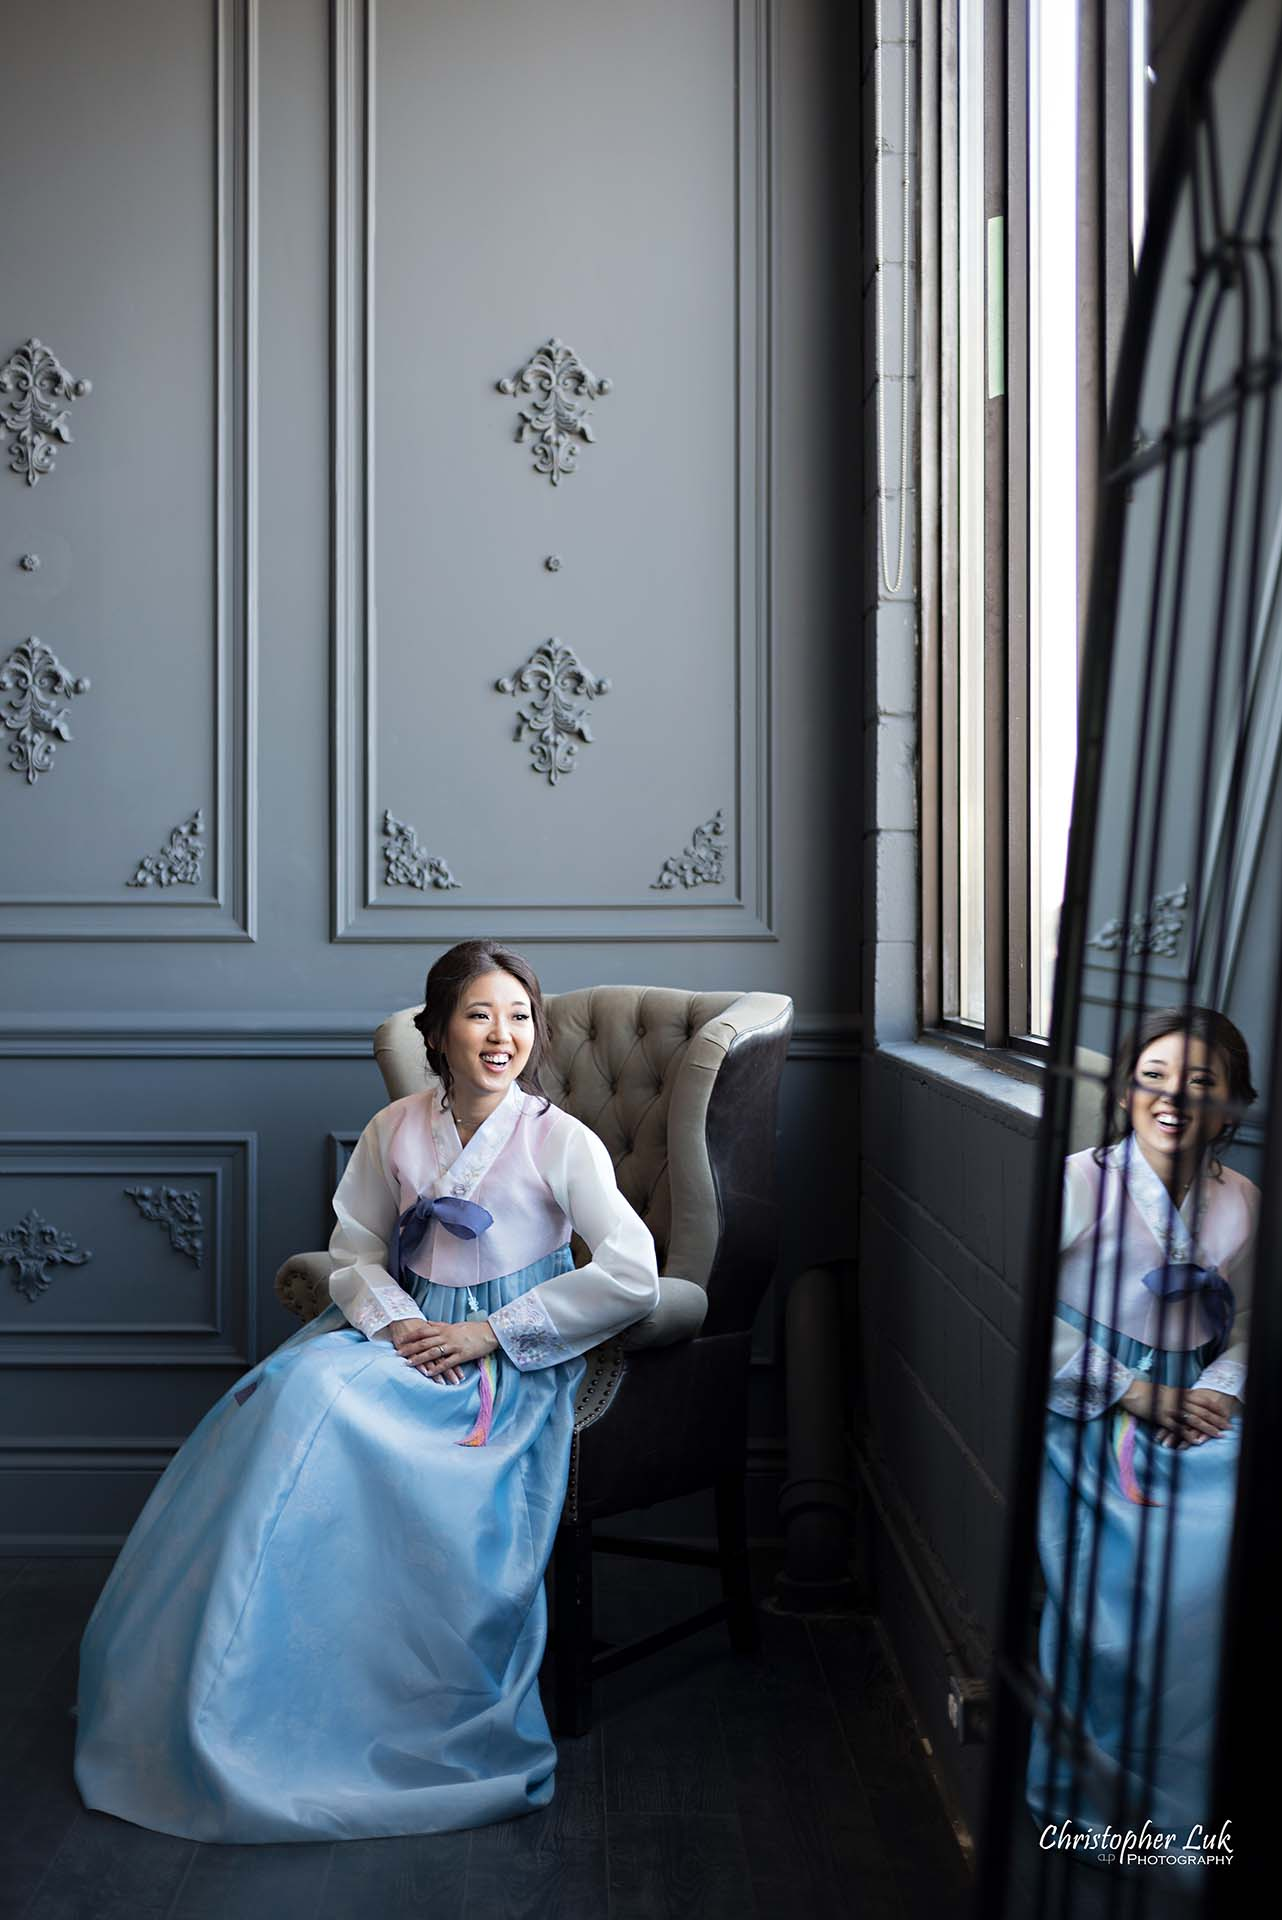 Christopher Luk Toronto Wedding Photographer - Mint Room Studios Bride Natural Candid Photojournalistic Library Studio Korean Drama Hanbok Leather Wingback Chair Mirror Vertical